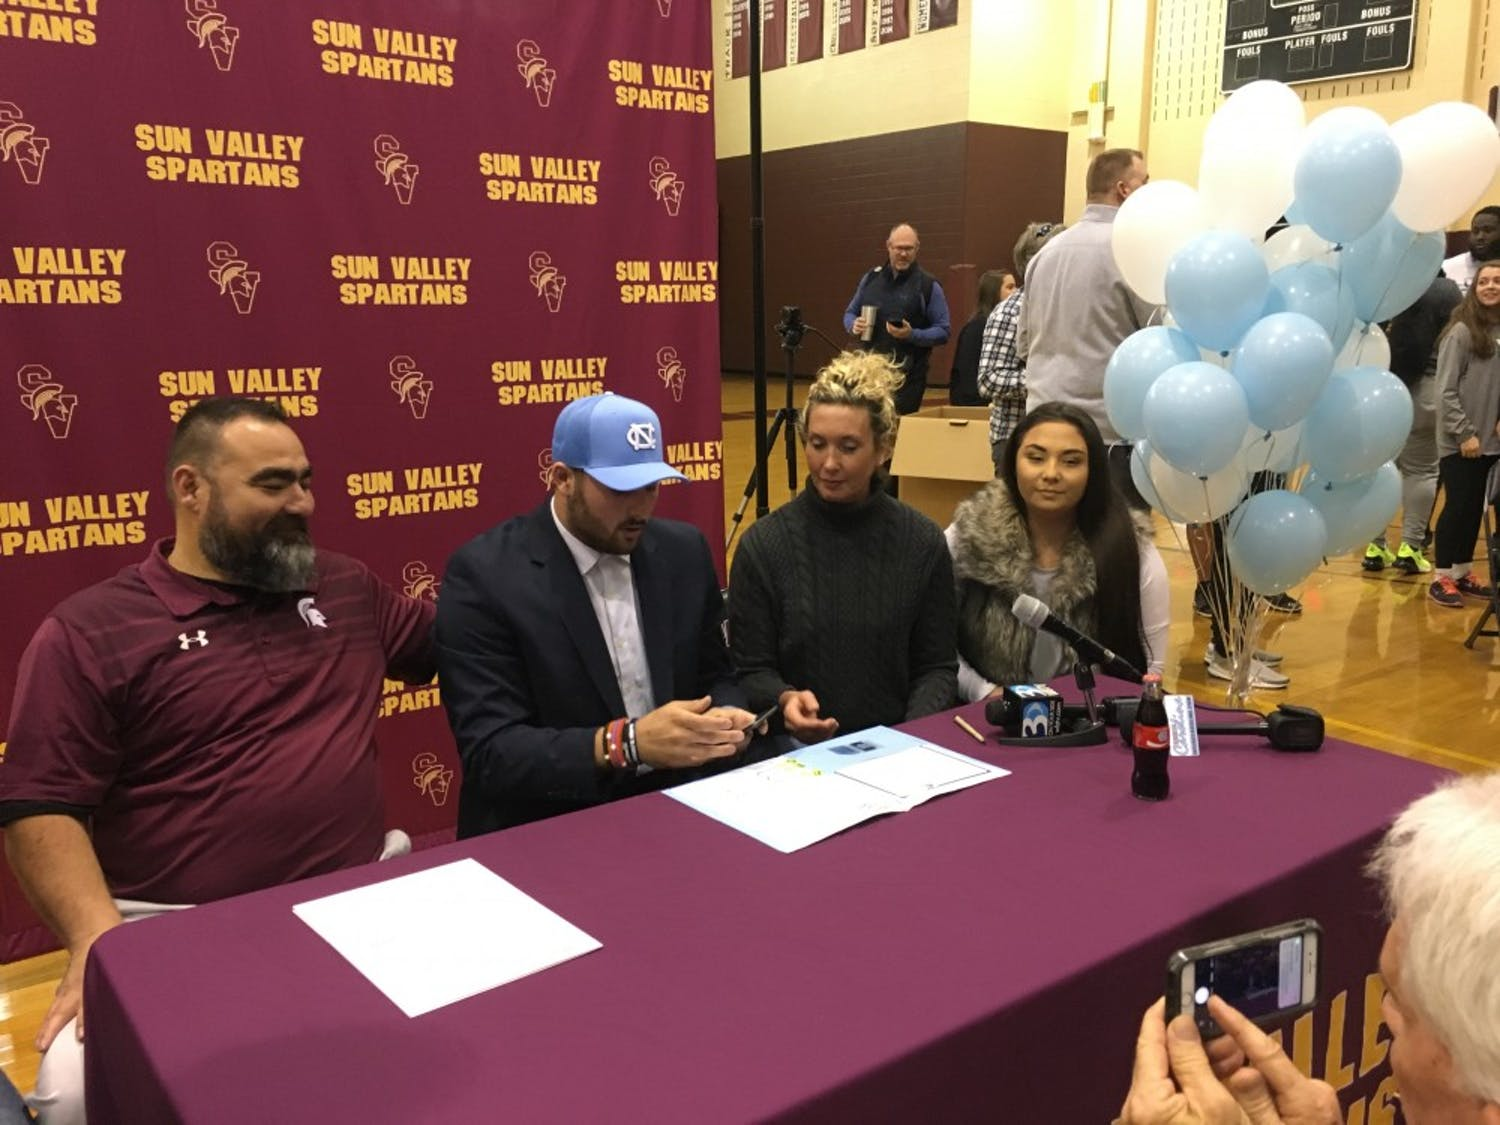 Sun Valley quarterback Sam Howell signs his national letter of intent to attend UNC while his family watches in Monroe.